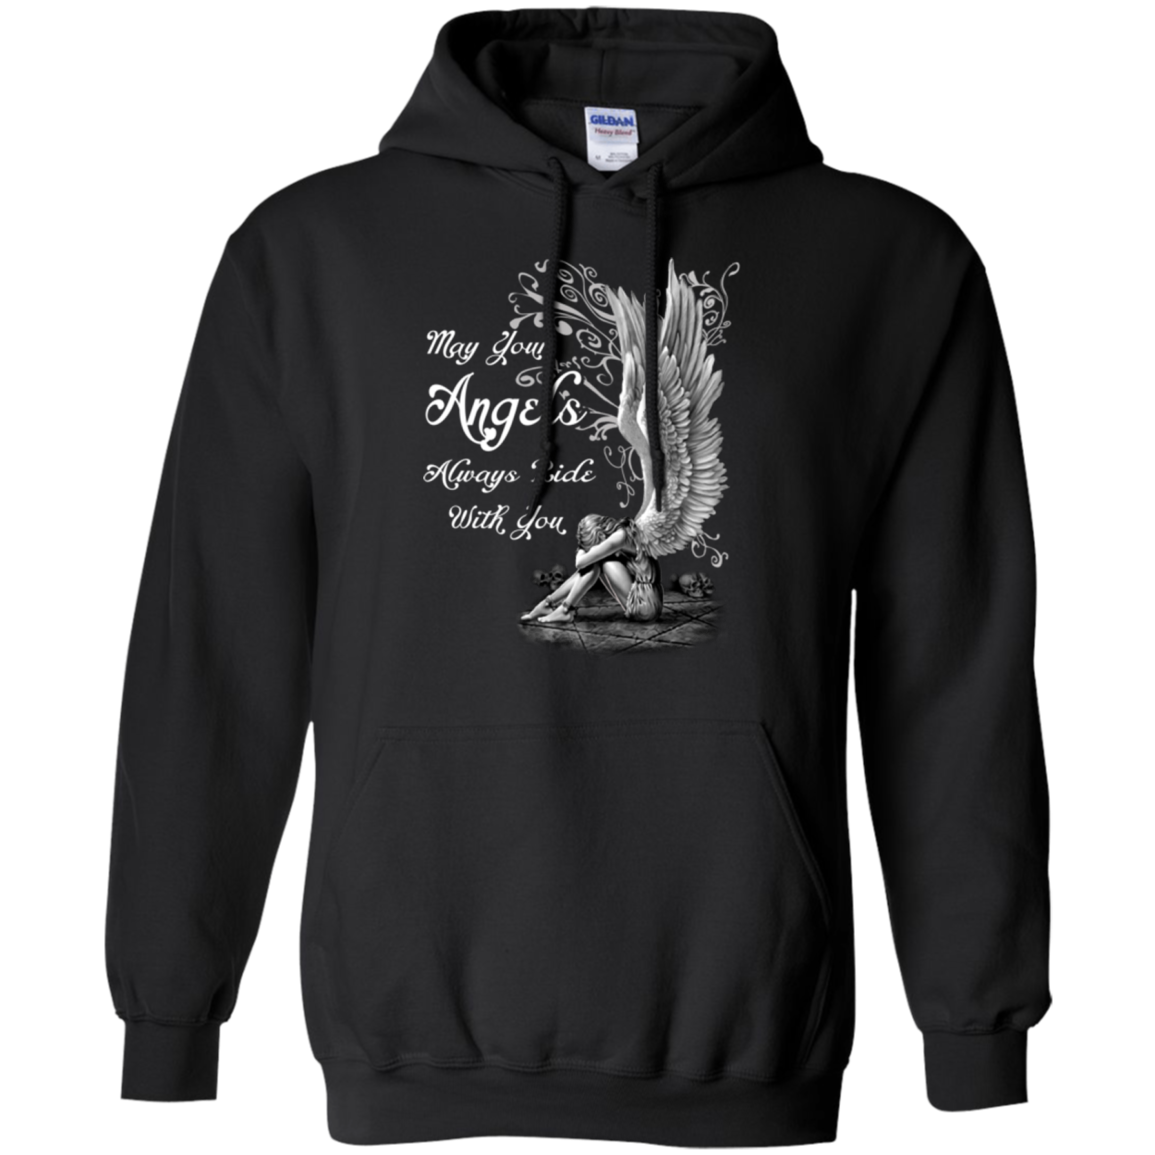 Angel T shirts Your Angels Always Ride With You Hoodies Sweatshirts TH